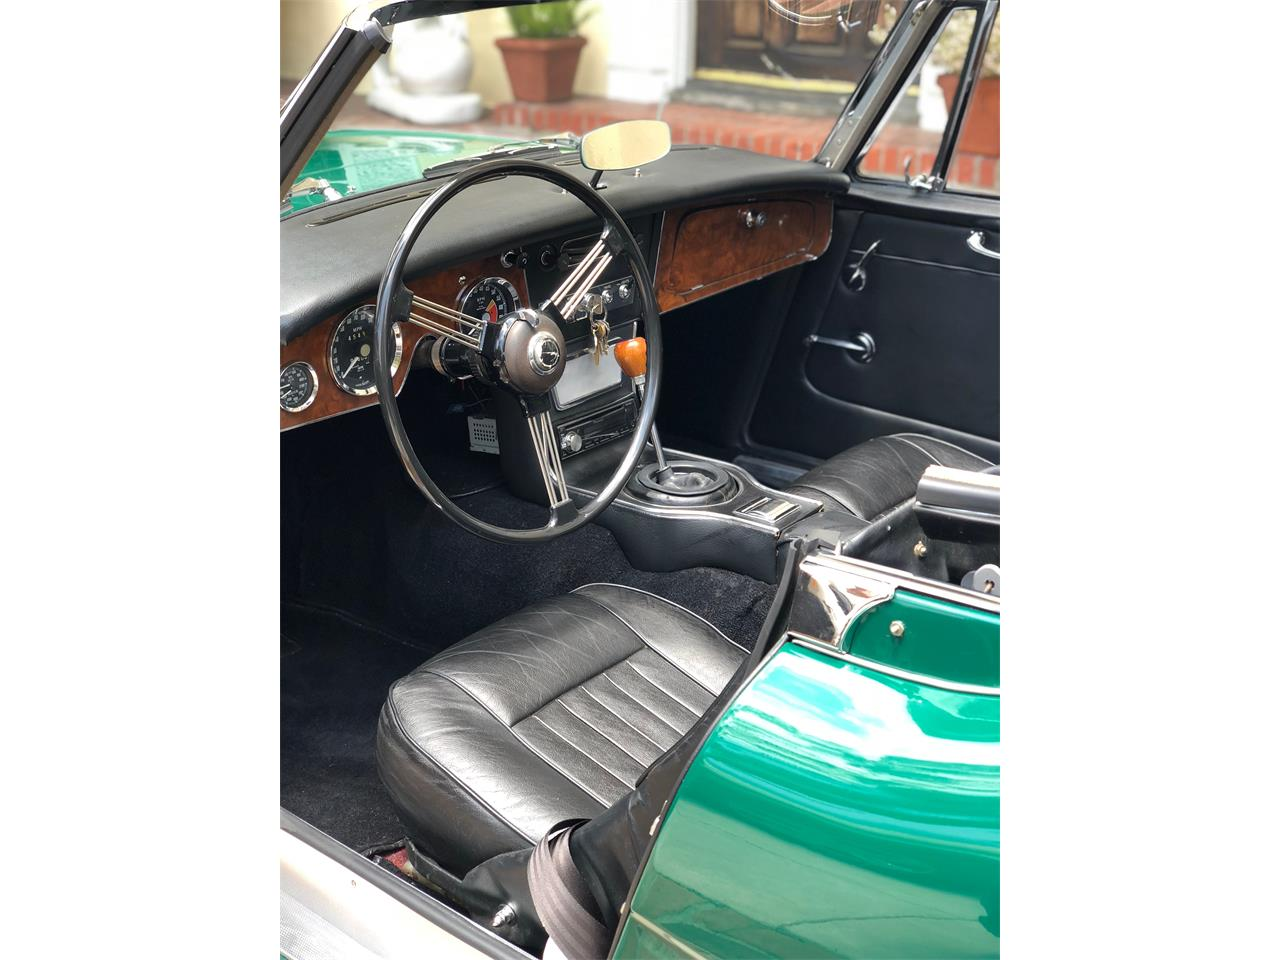 Large Picture of Classic '67 Austin-Healey 3000 Mark III - $75,000.00 Offered by a Private Seller - NLOV